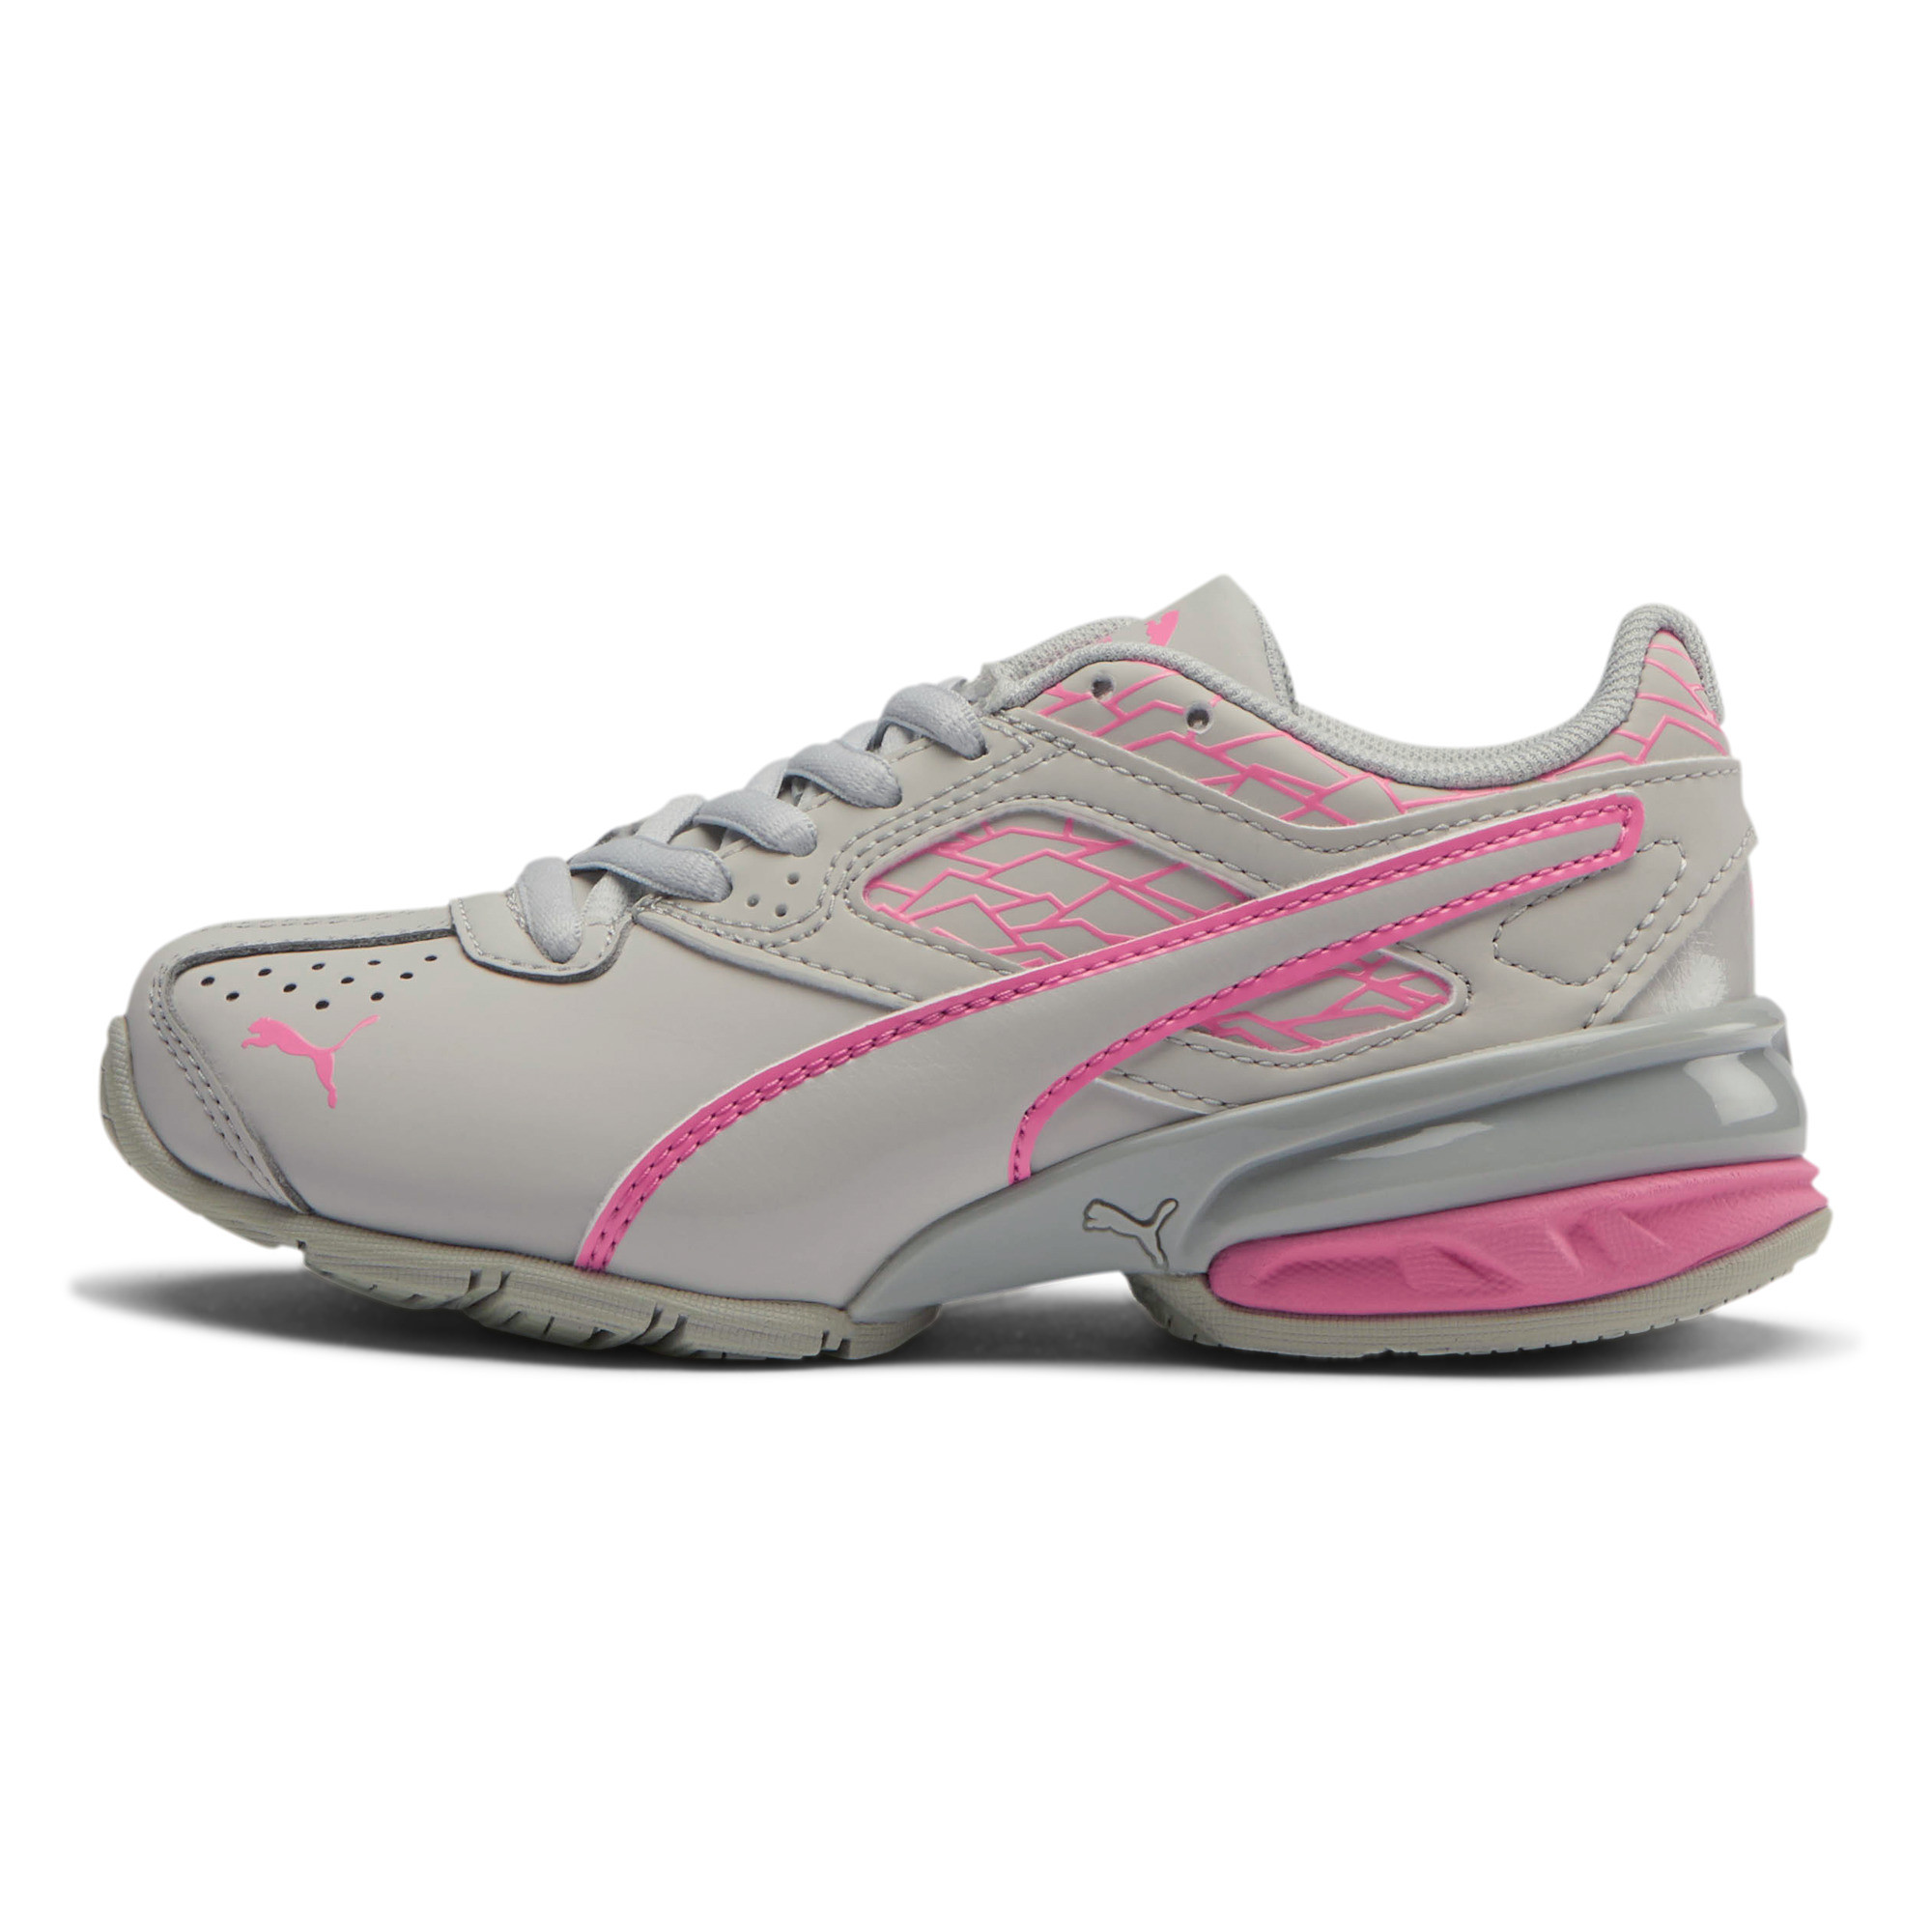 PUMA-Tazon-6-Fracture-AC-Little-Kids-039-Shoes-Kids-Shoe-Kids thumbnail 15